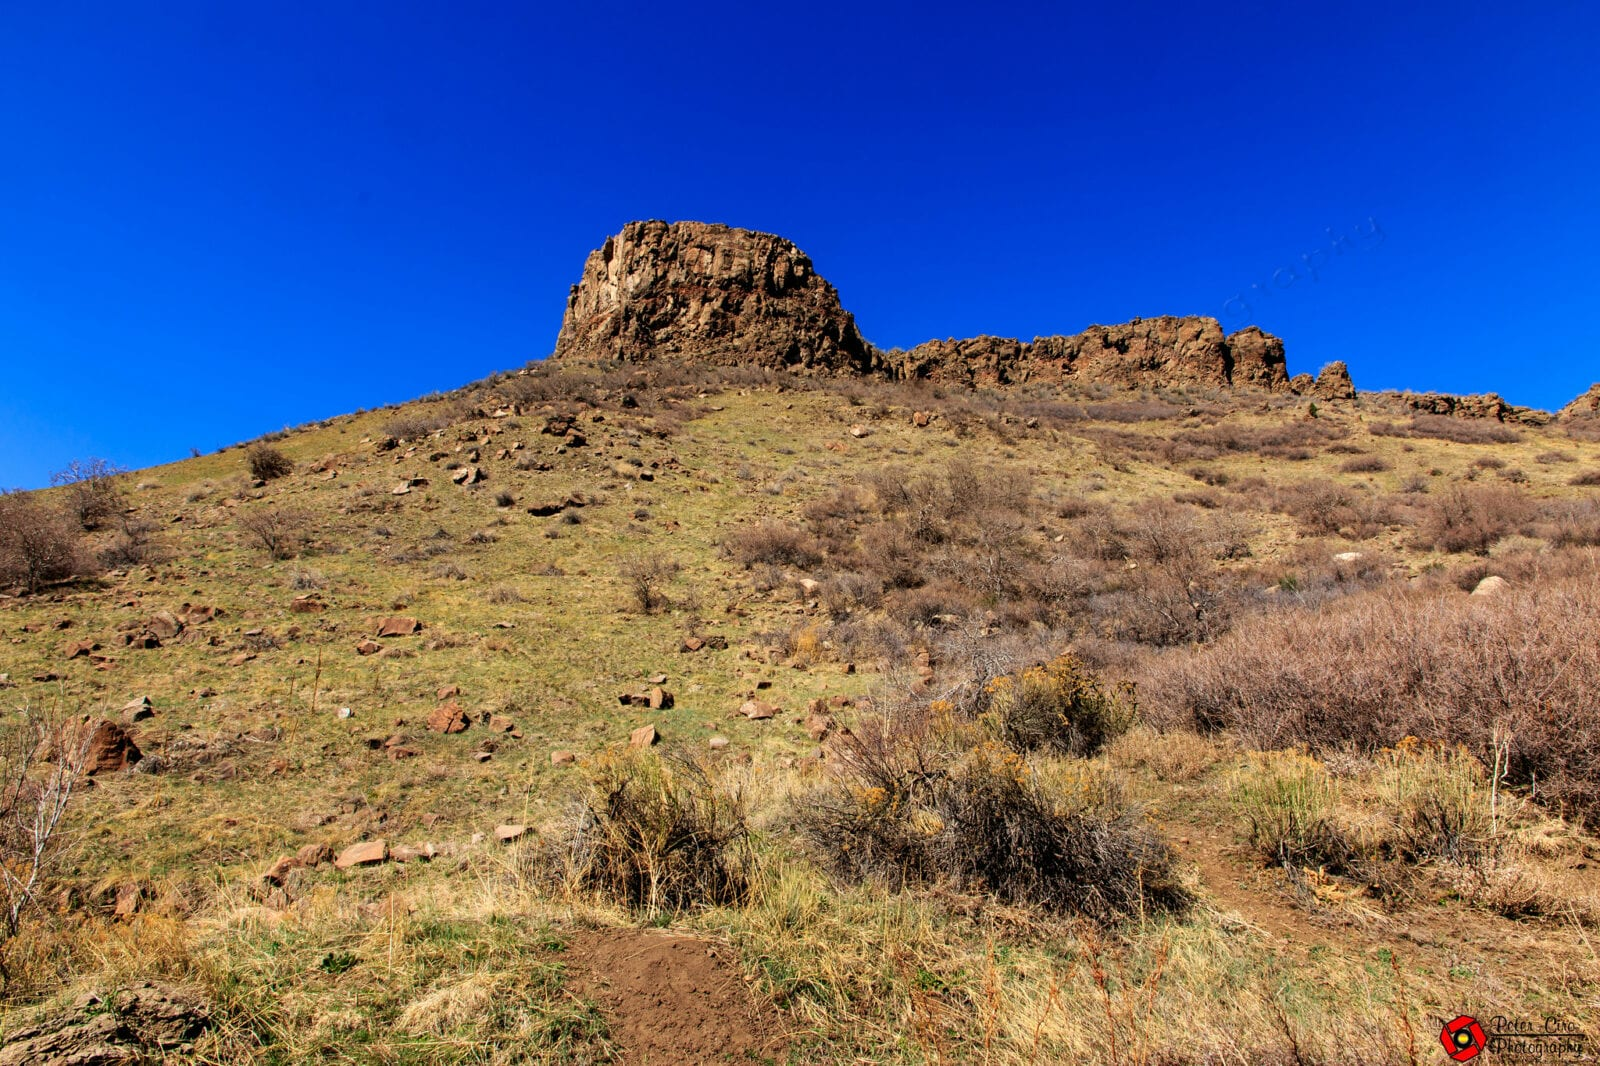 Image of the South Table Mountain in Golden, Colorado